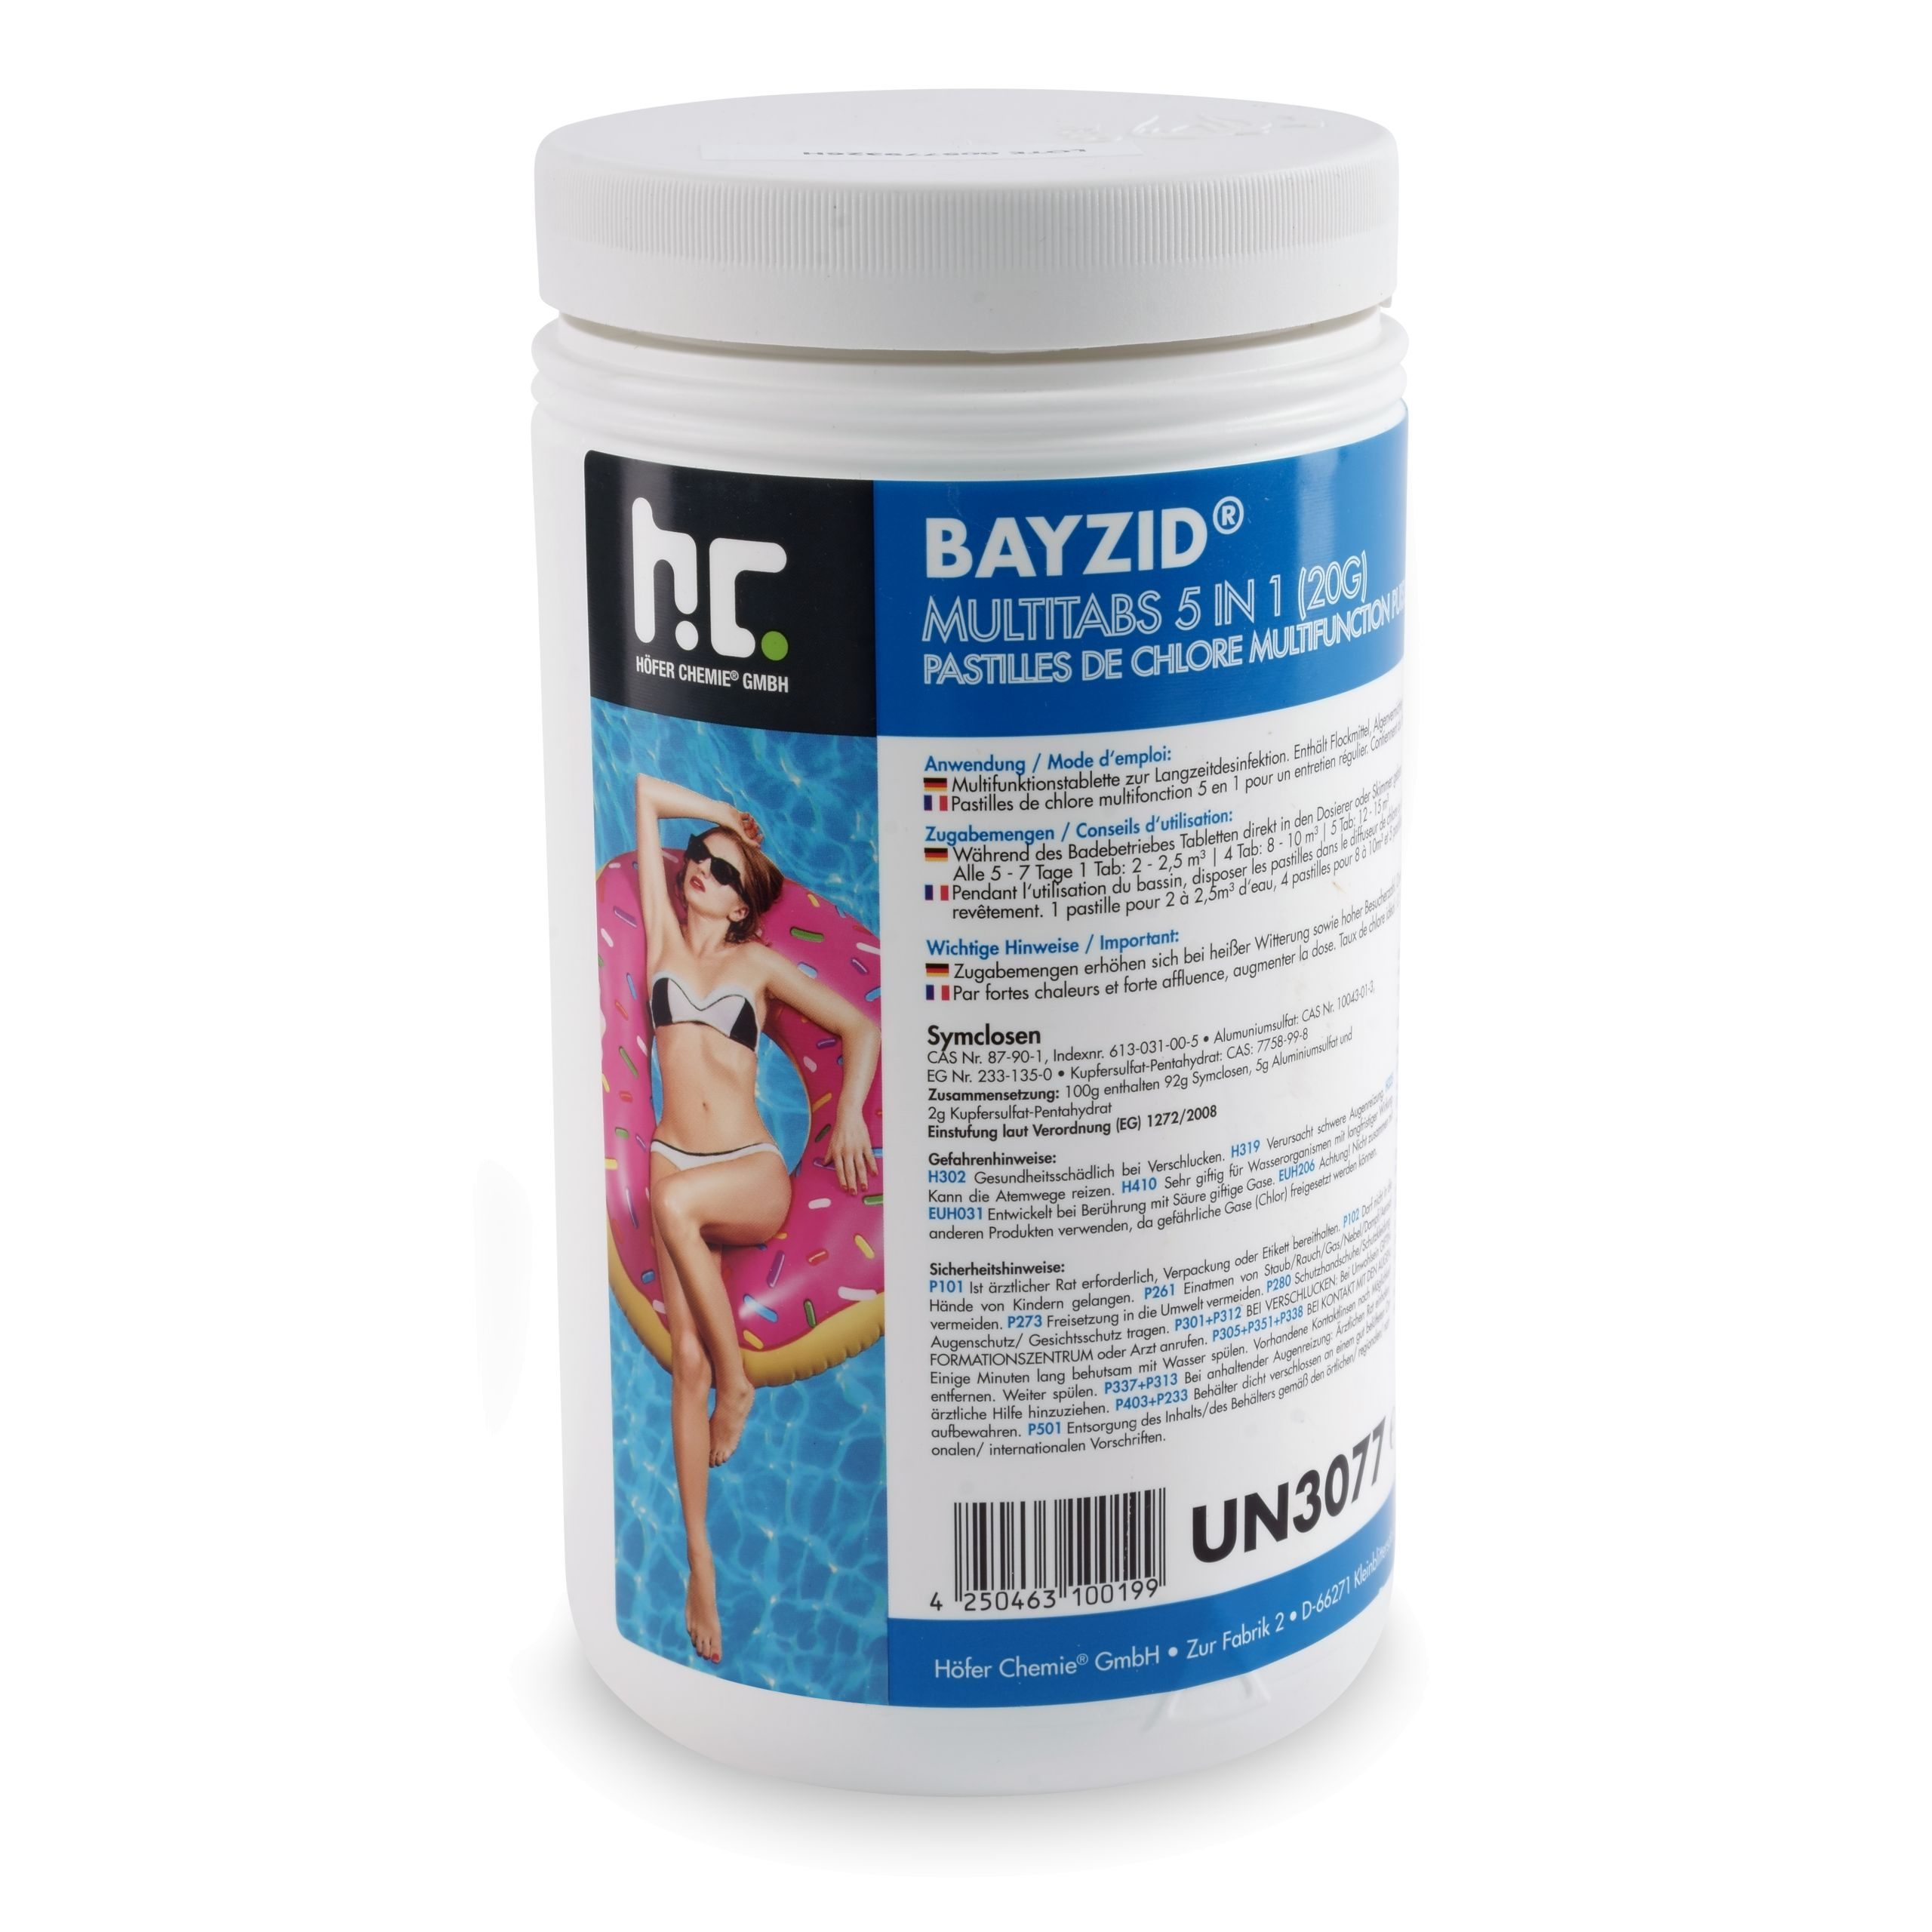 Höfer BAYZID Multitabs 20 g 5 in 1 - 1 kg